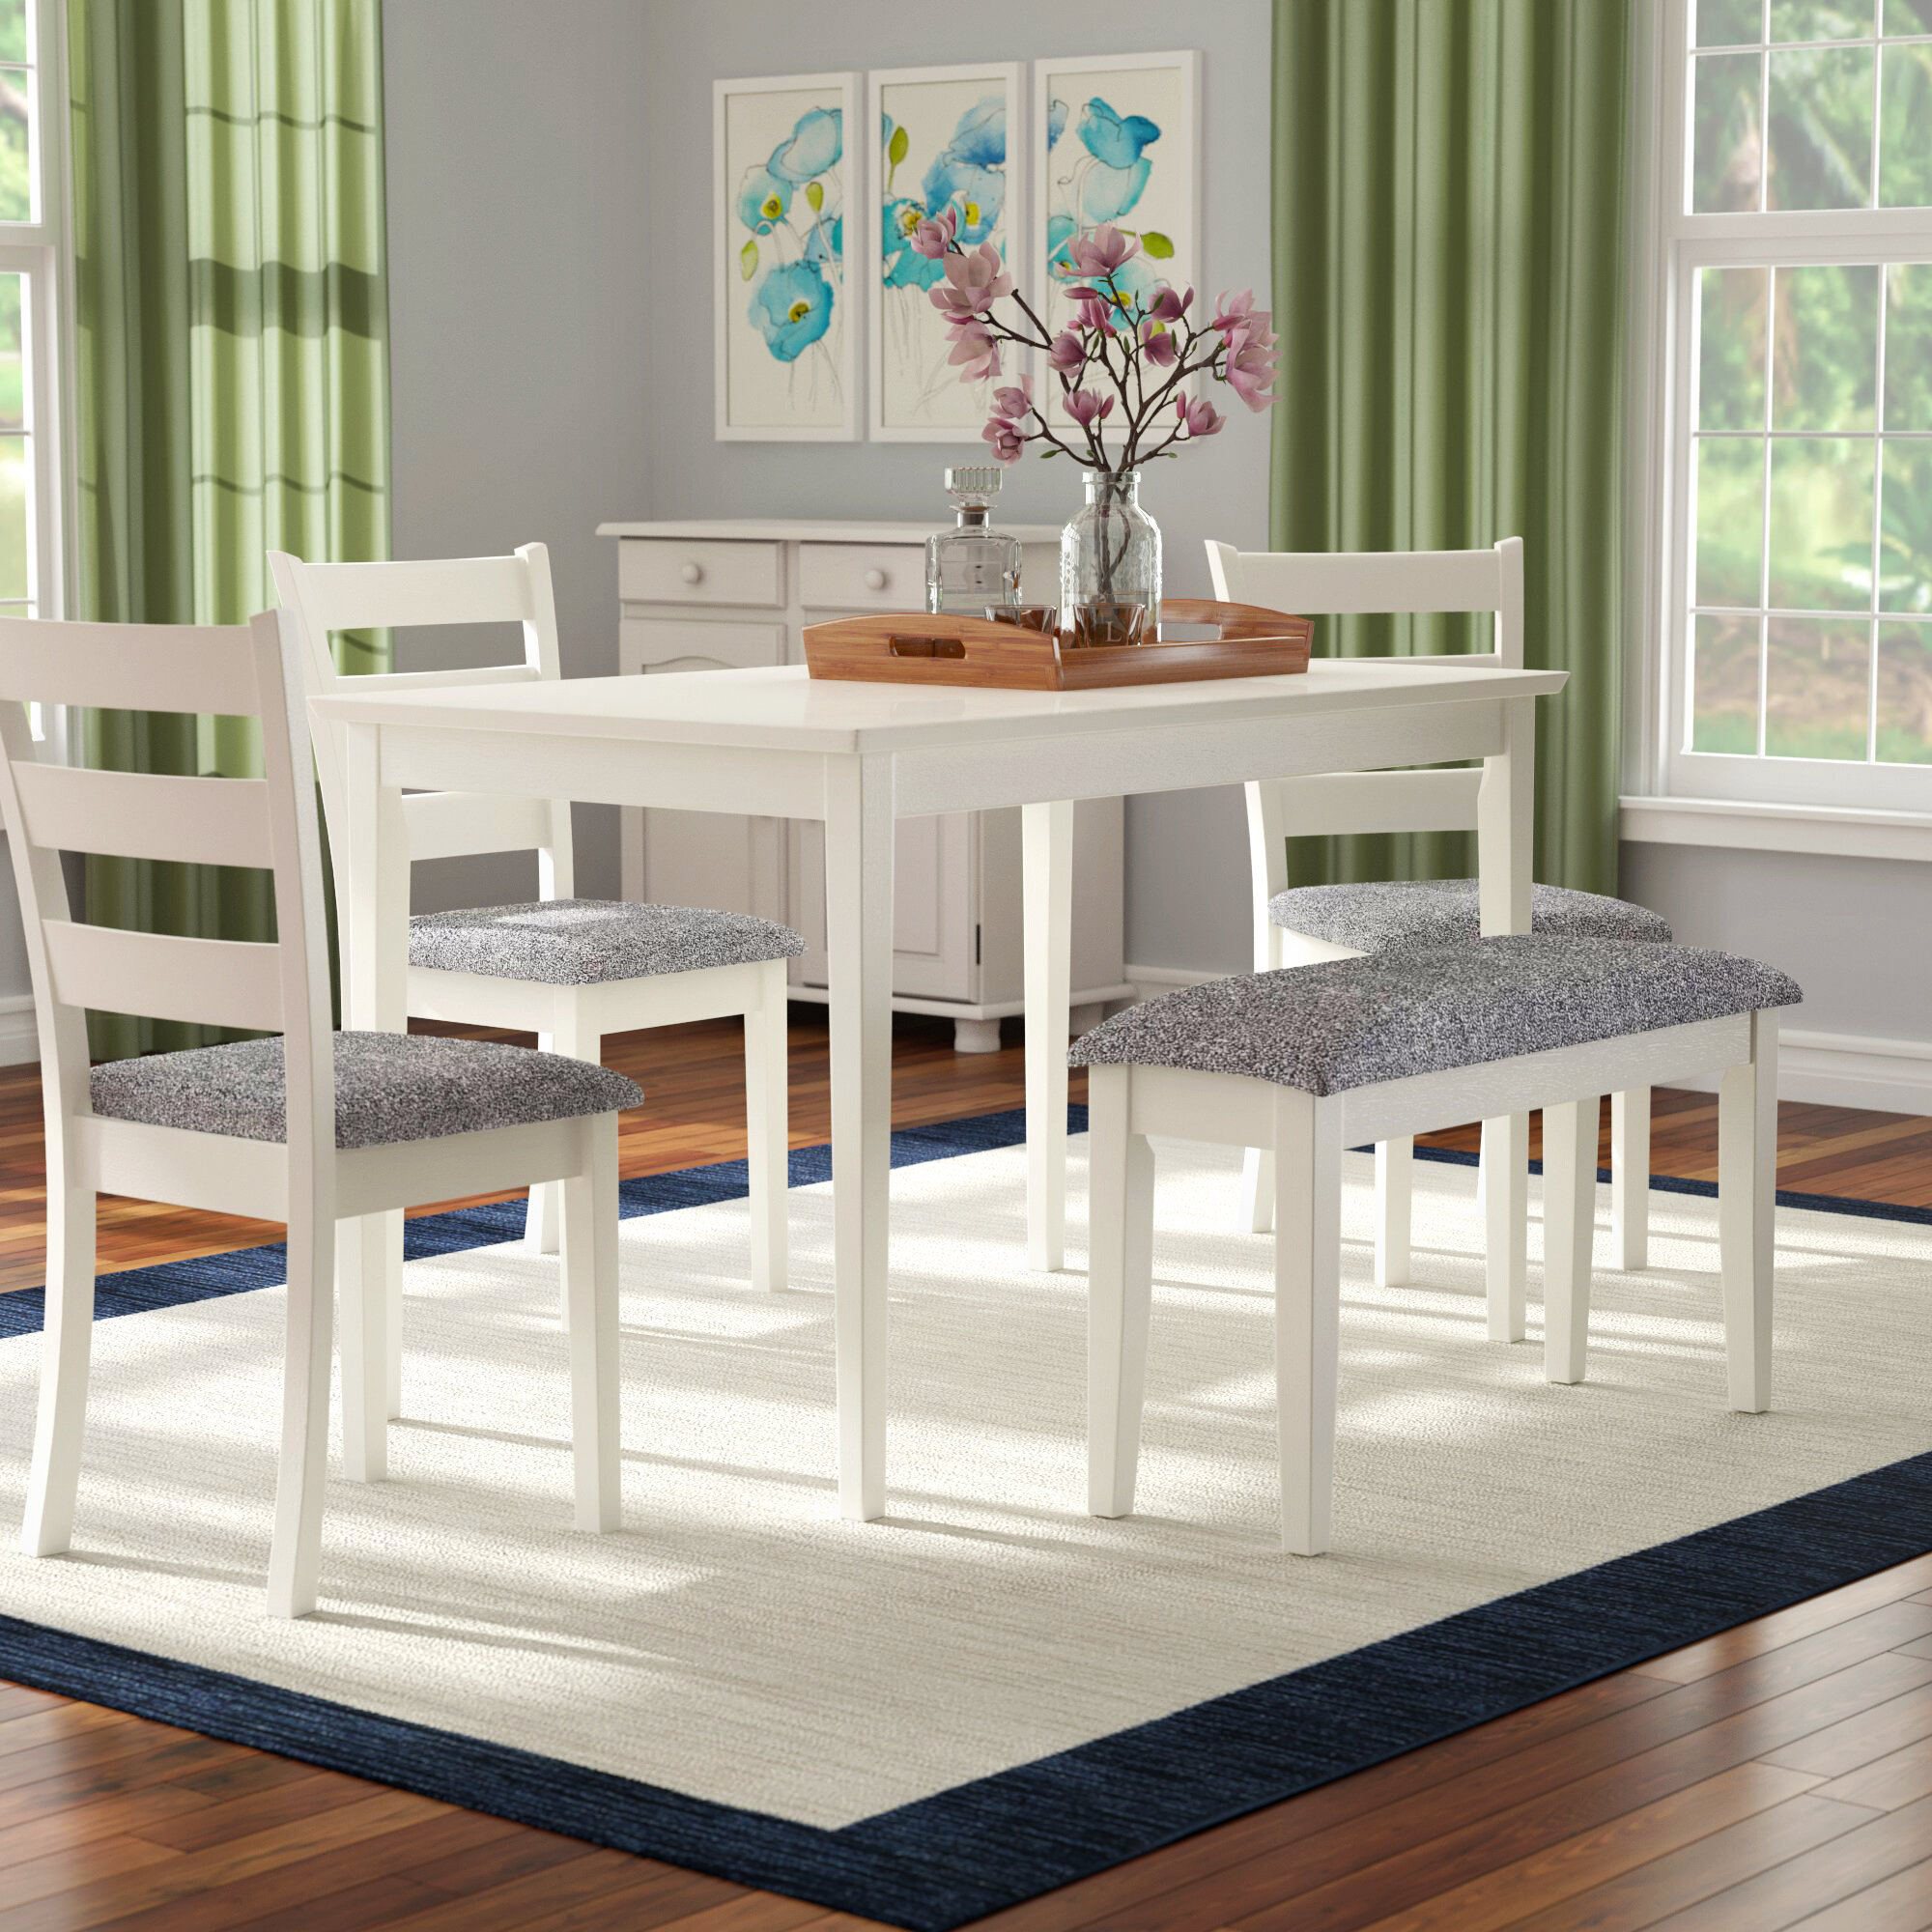 Emmie 5 Piece Dining Set Intended For Current Yedinak 5 Piece Solid Wood Dining Sets (View 12 of 20)